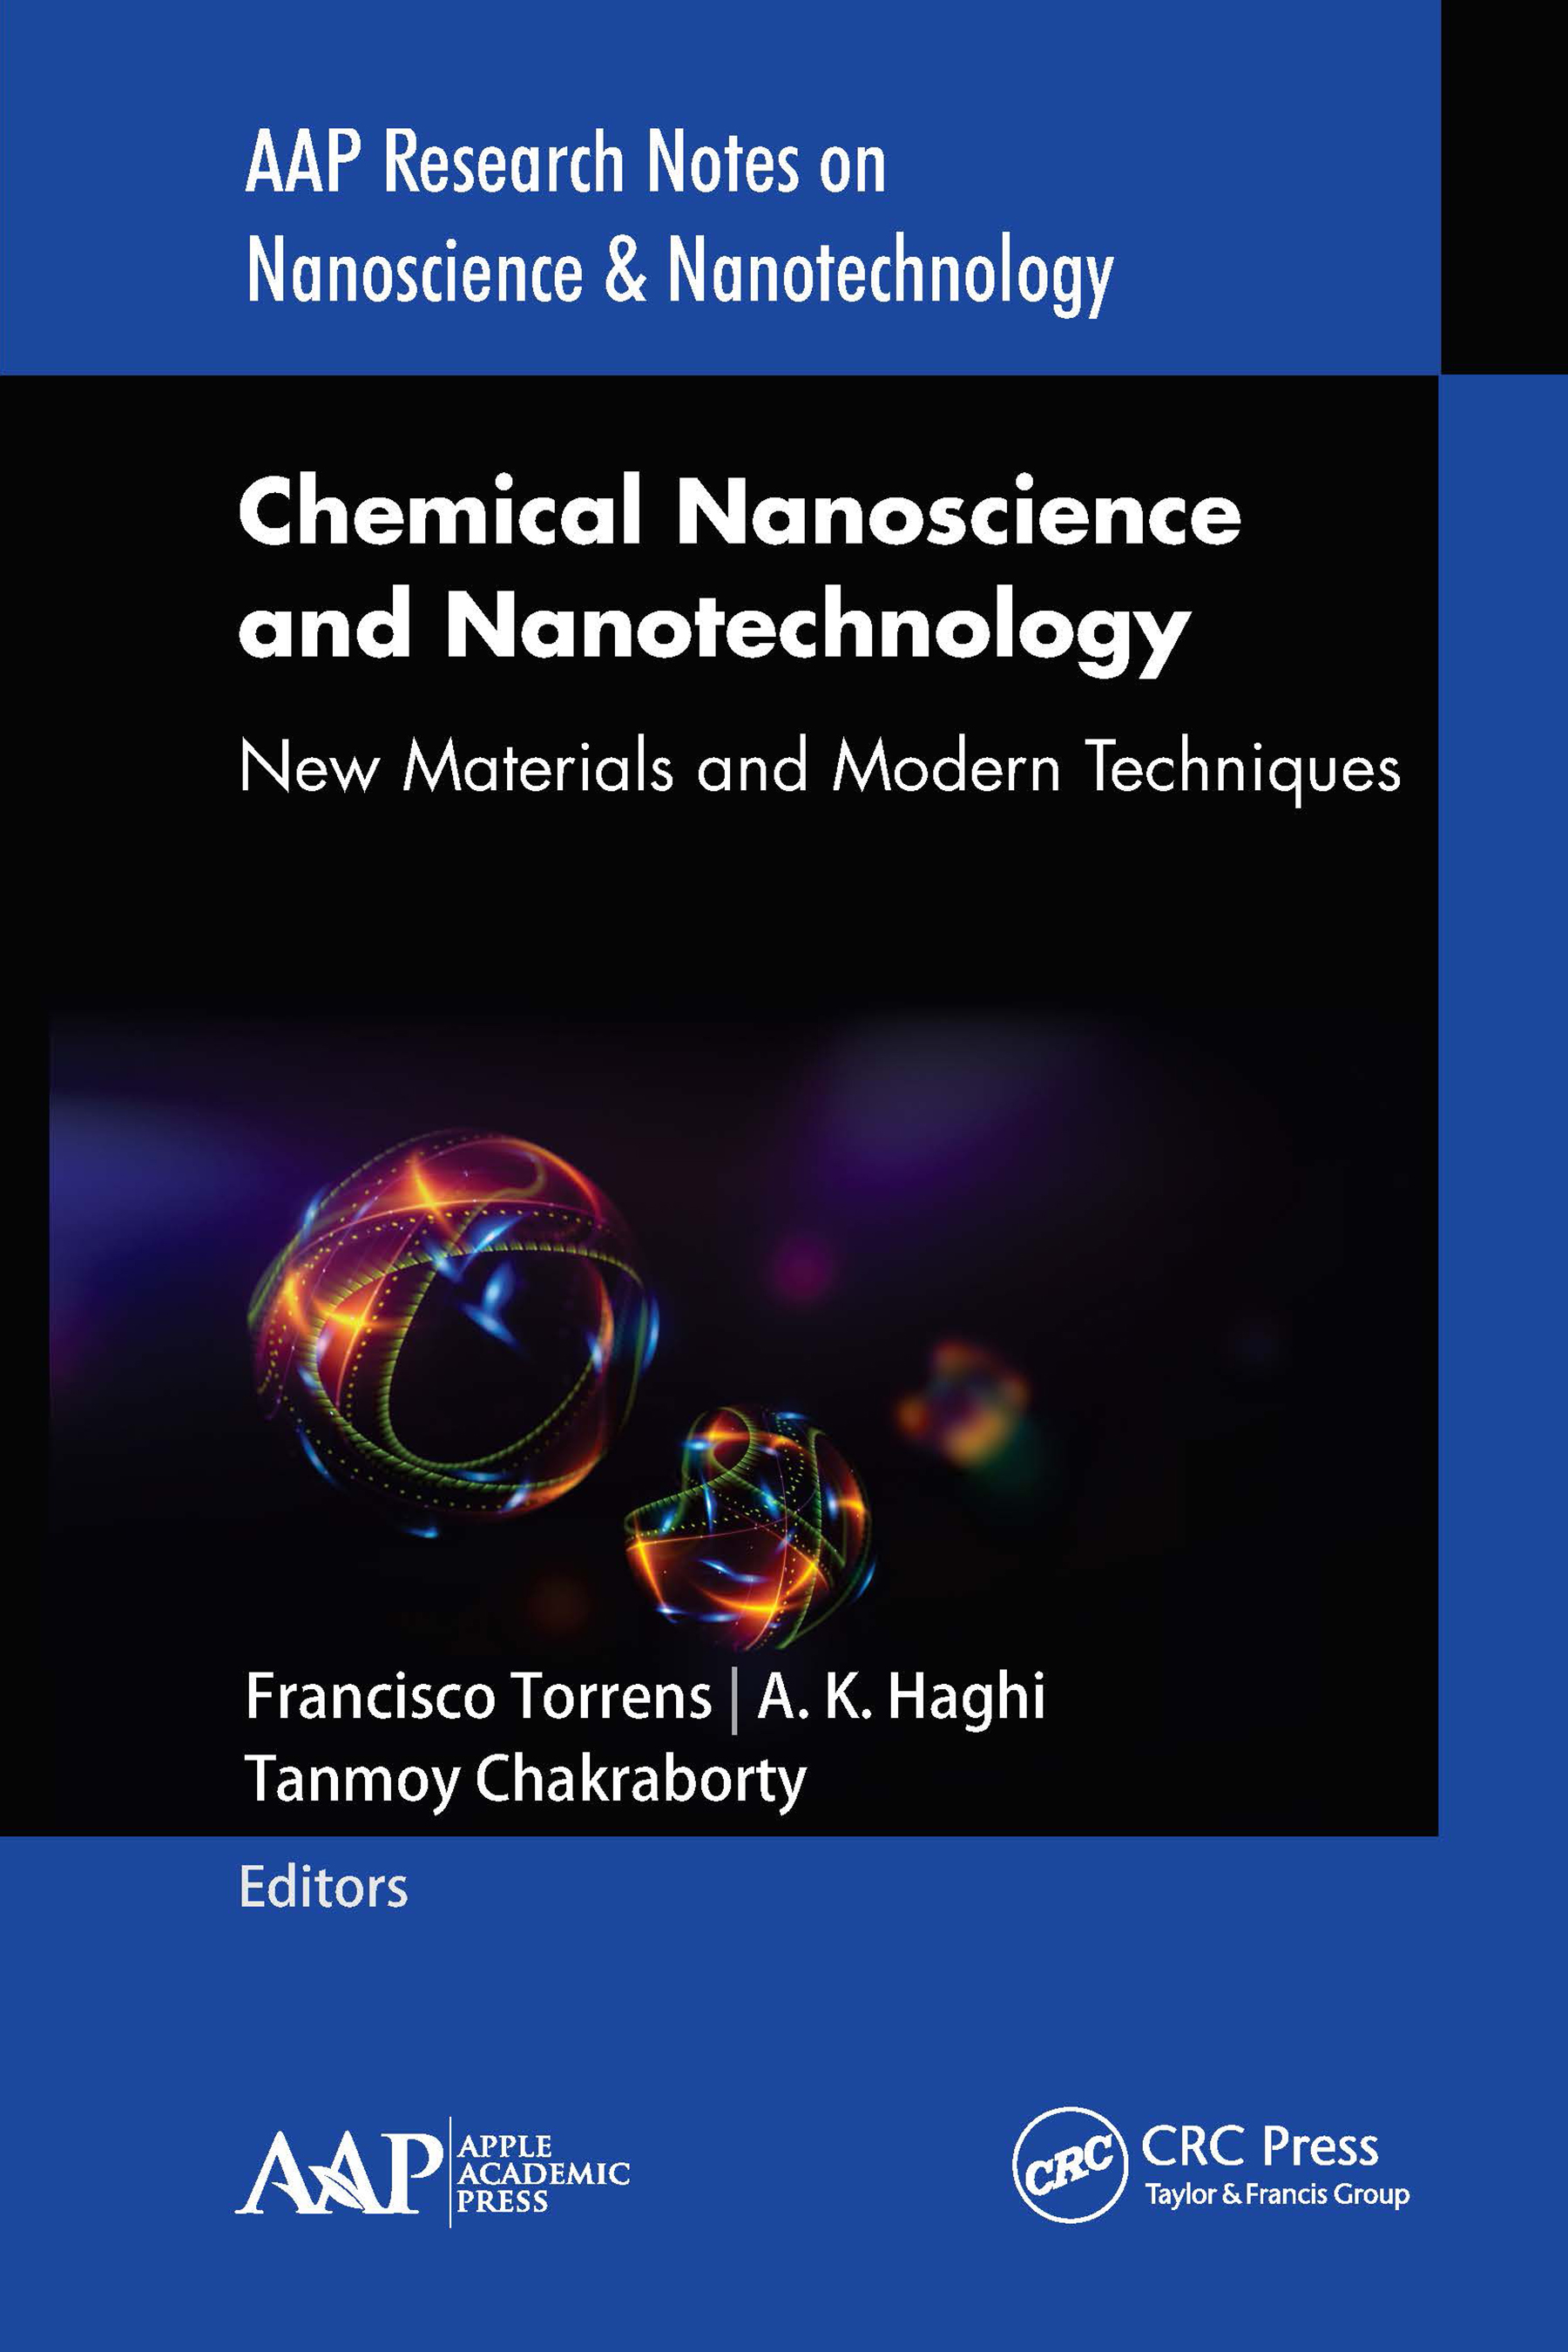 Chemical Nanoscience and Nanotechnology: New Materials and Modern Techniques book cover